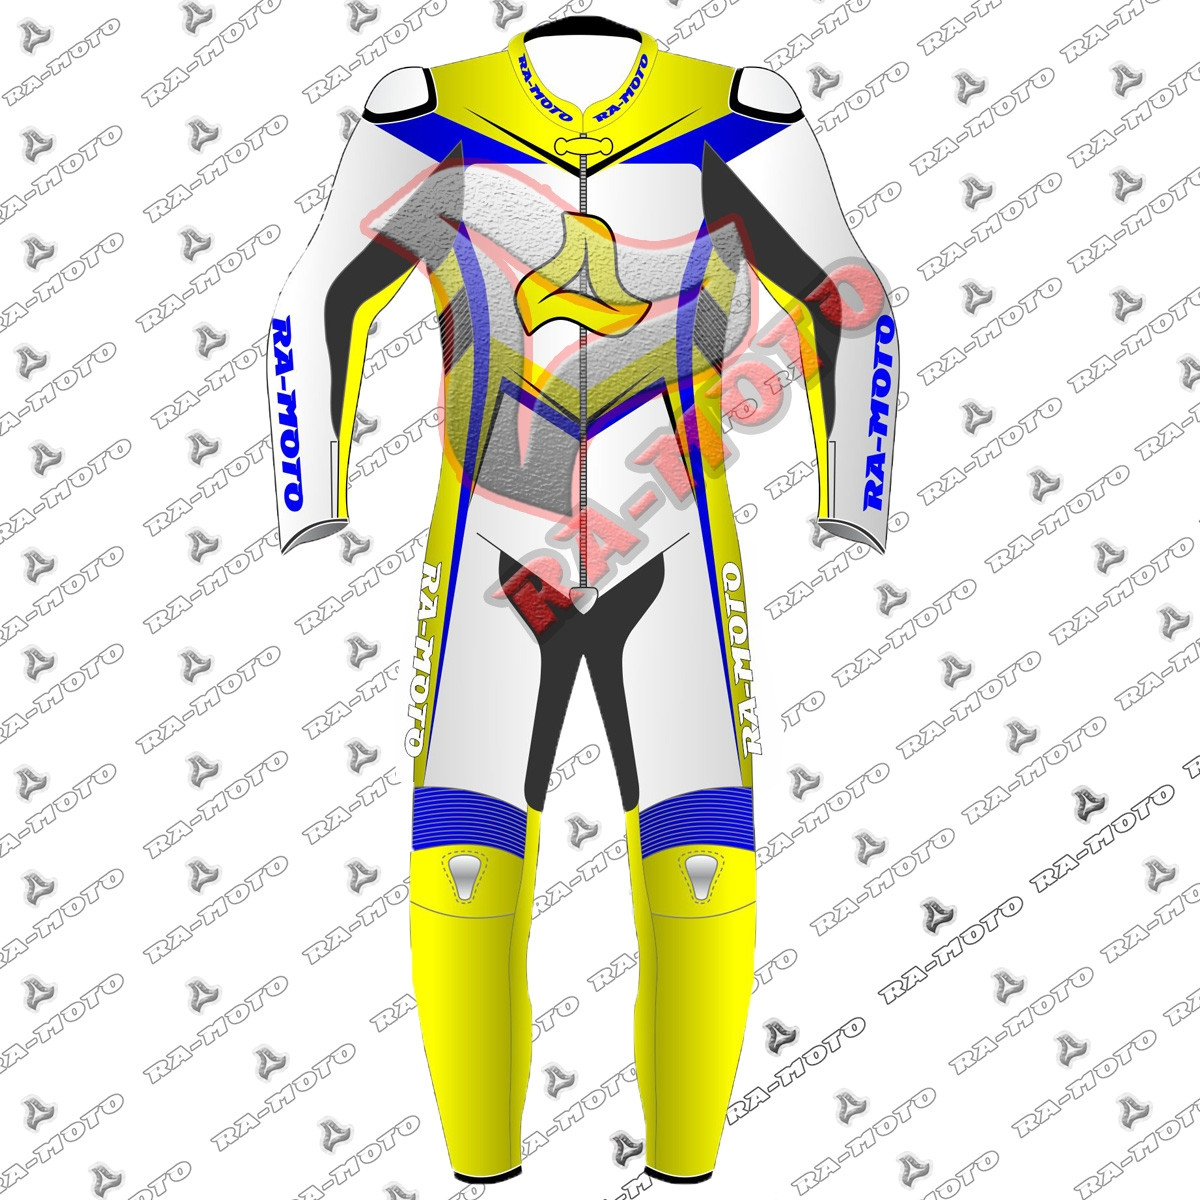 RA-15329  M51 Downhill leather  suit